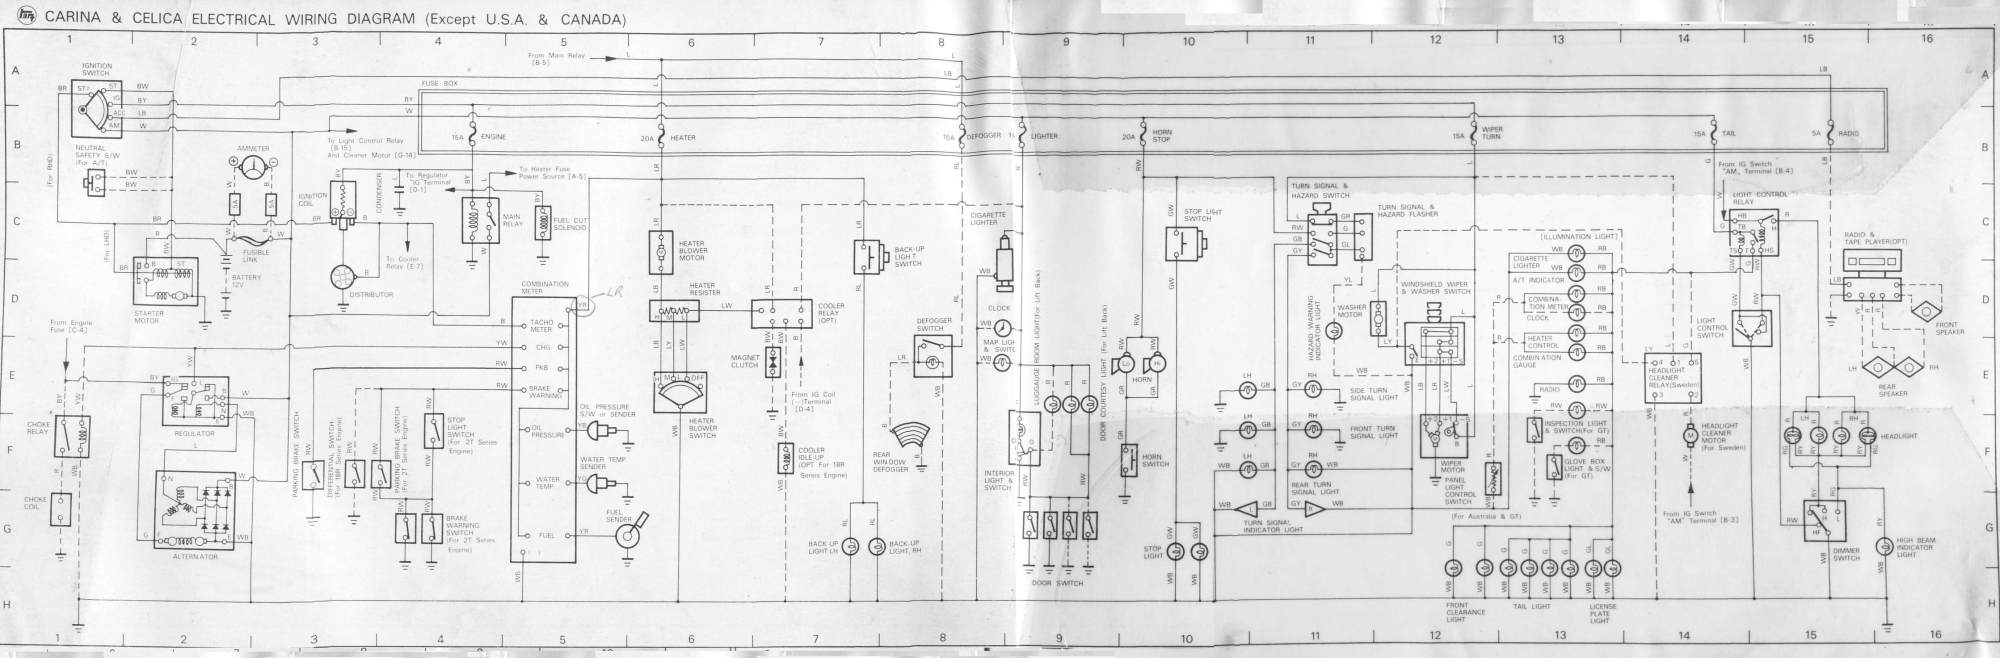 hight resolution of 1977 celica wiring diagram wiring diagram experts1977 celica wiring diagram